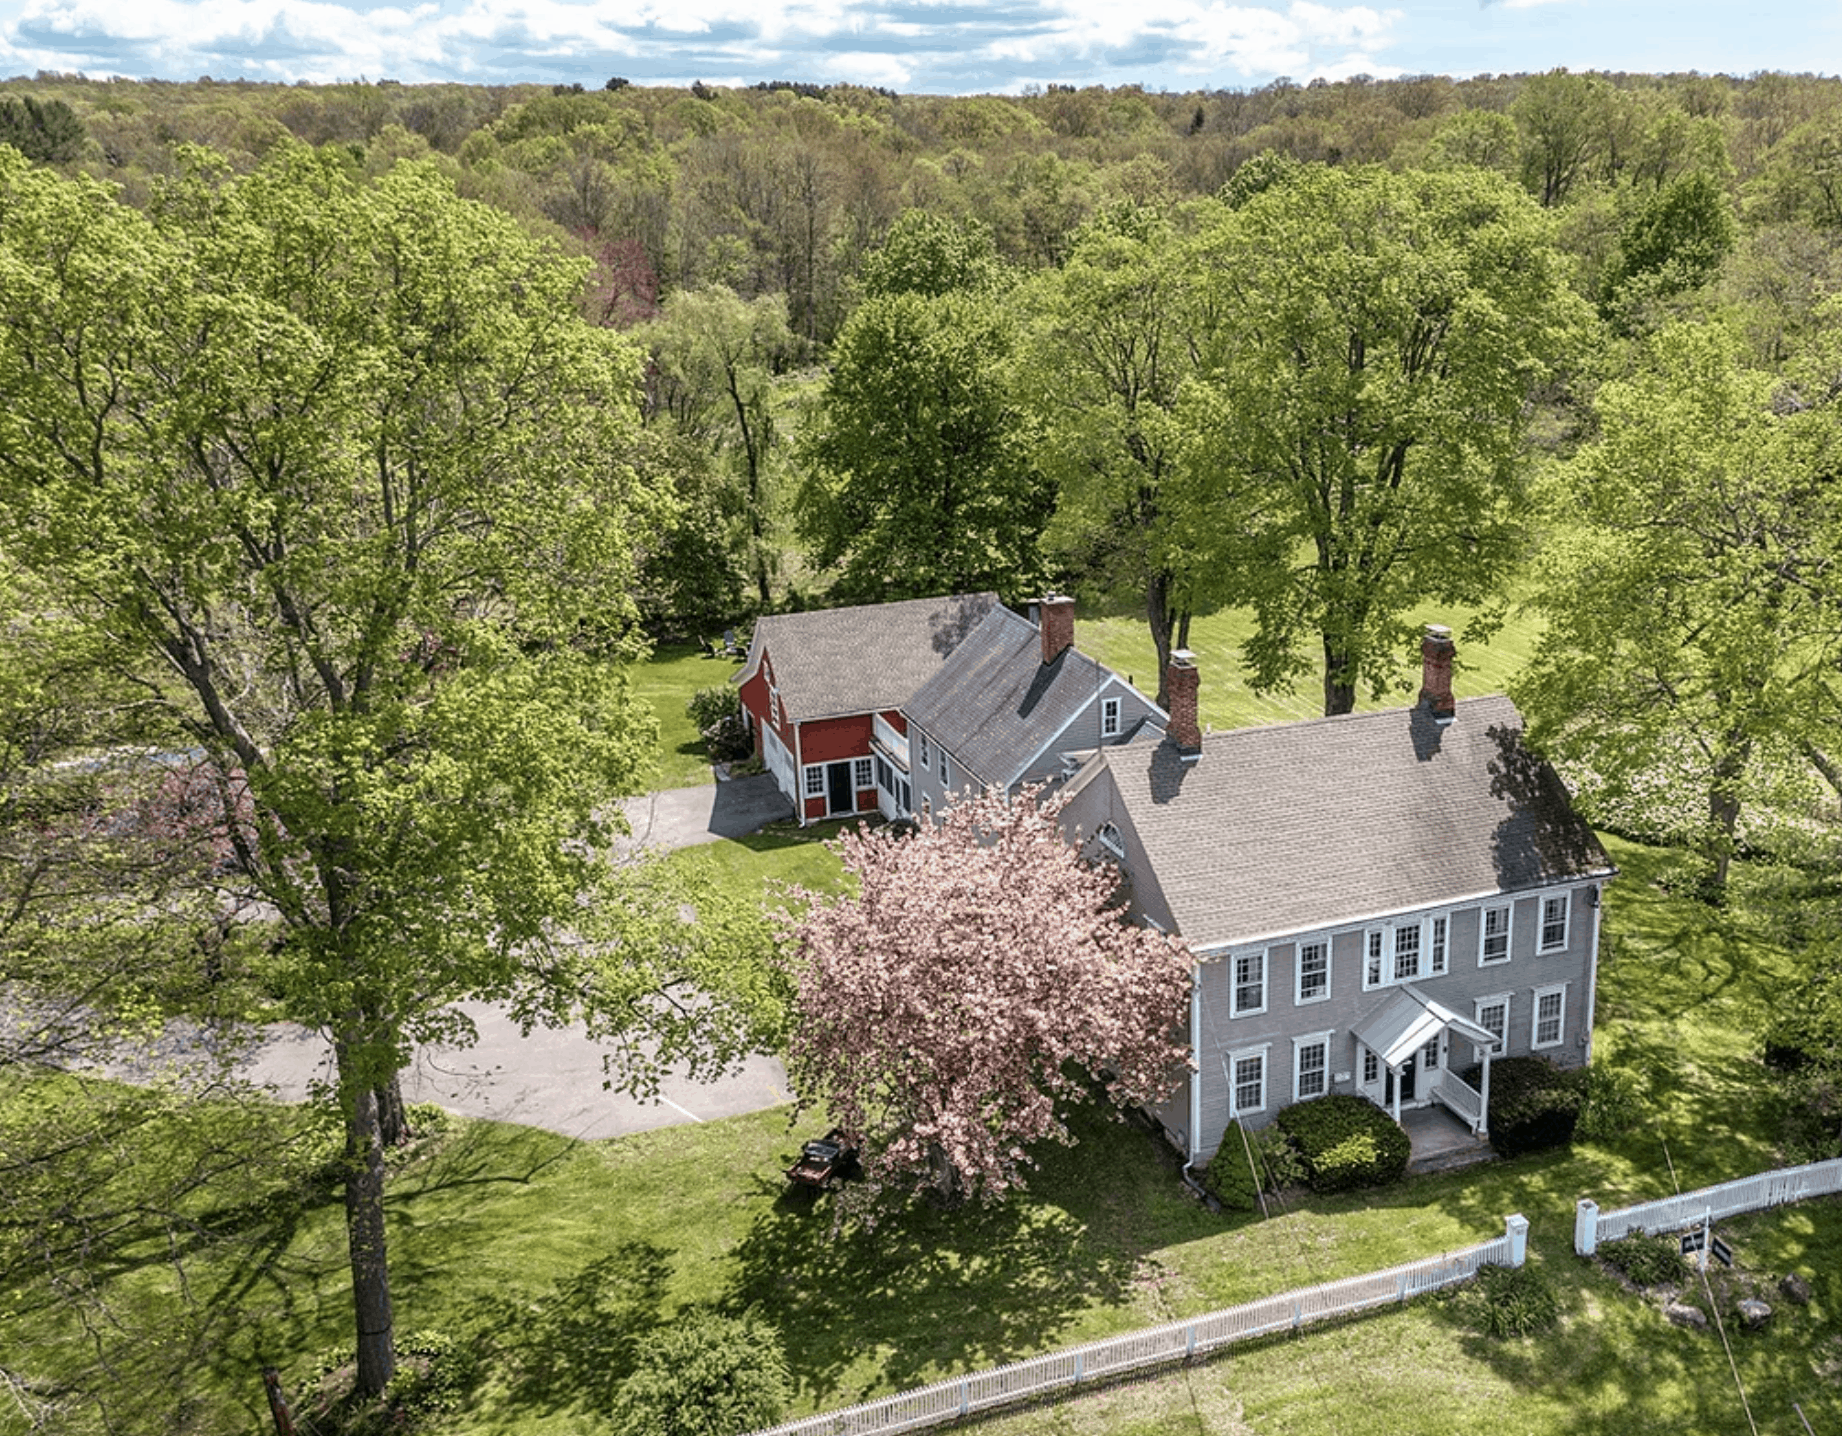 House surrounded by trees and grass